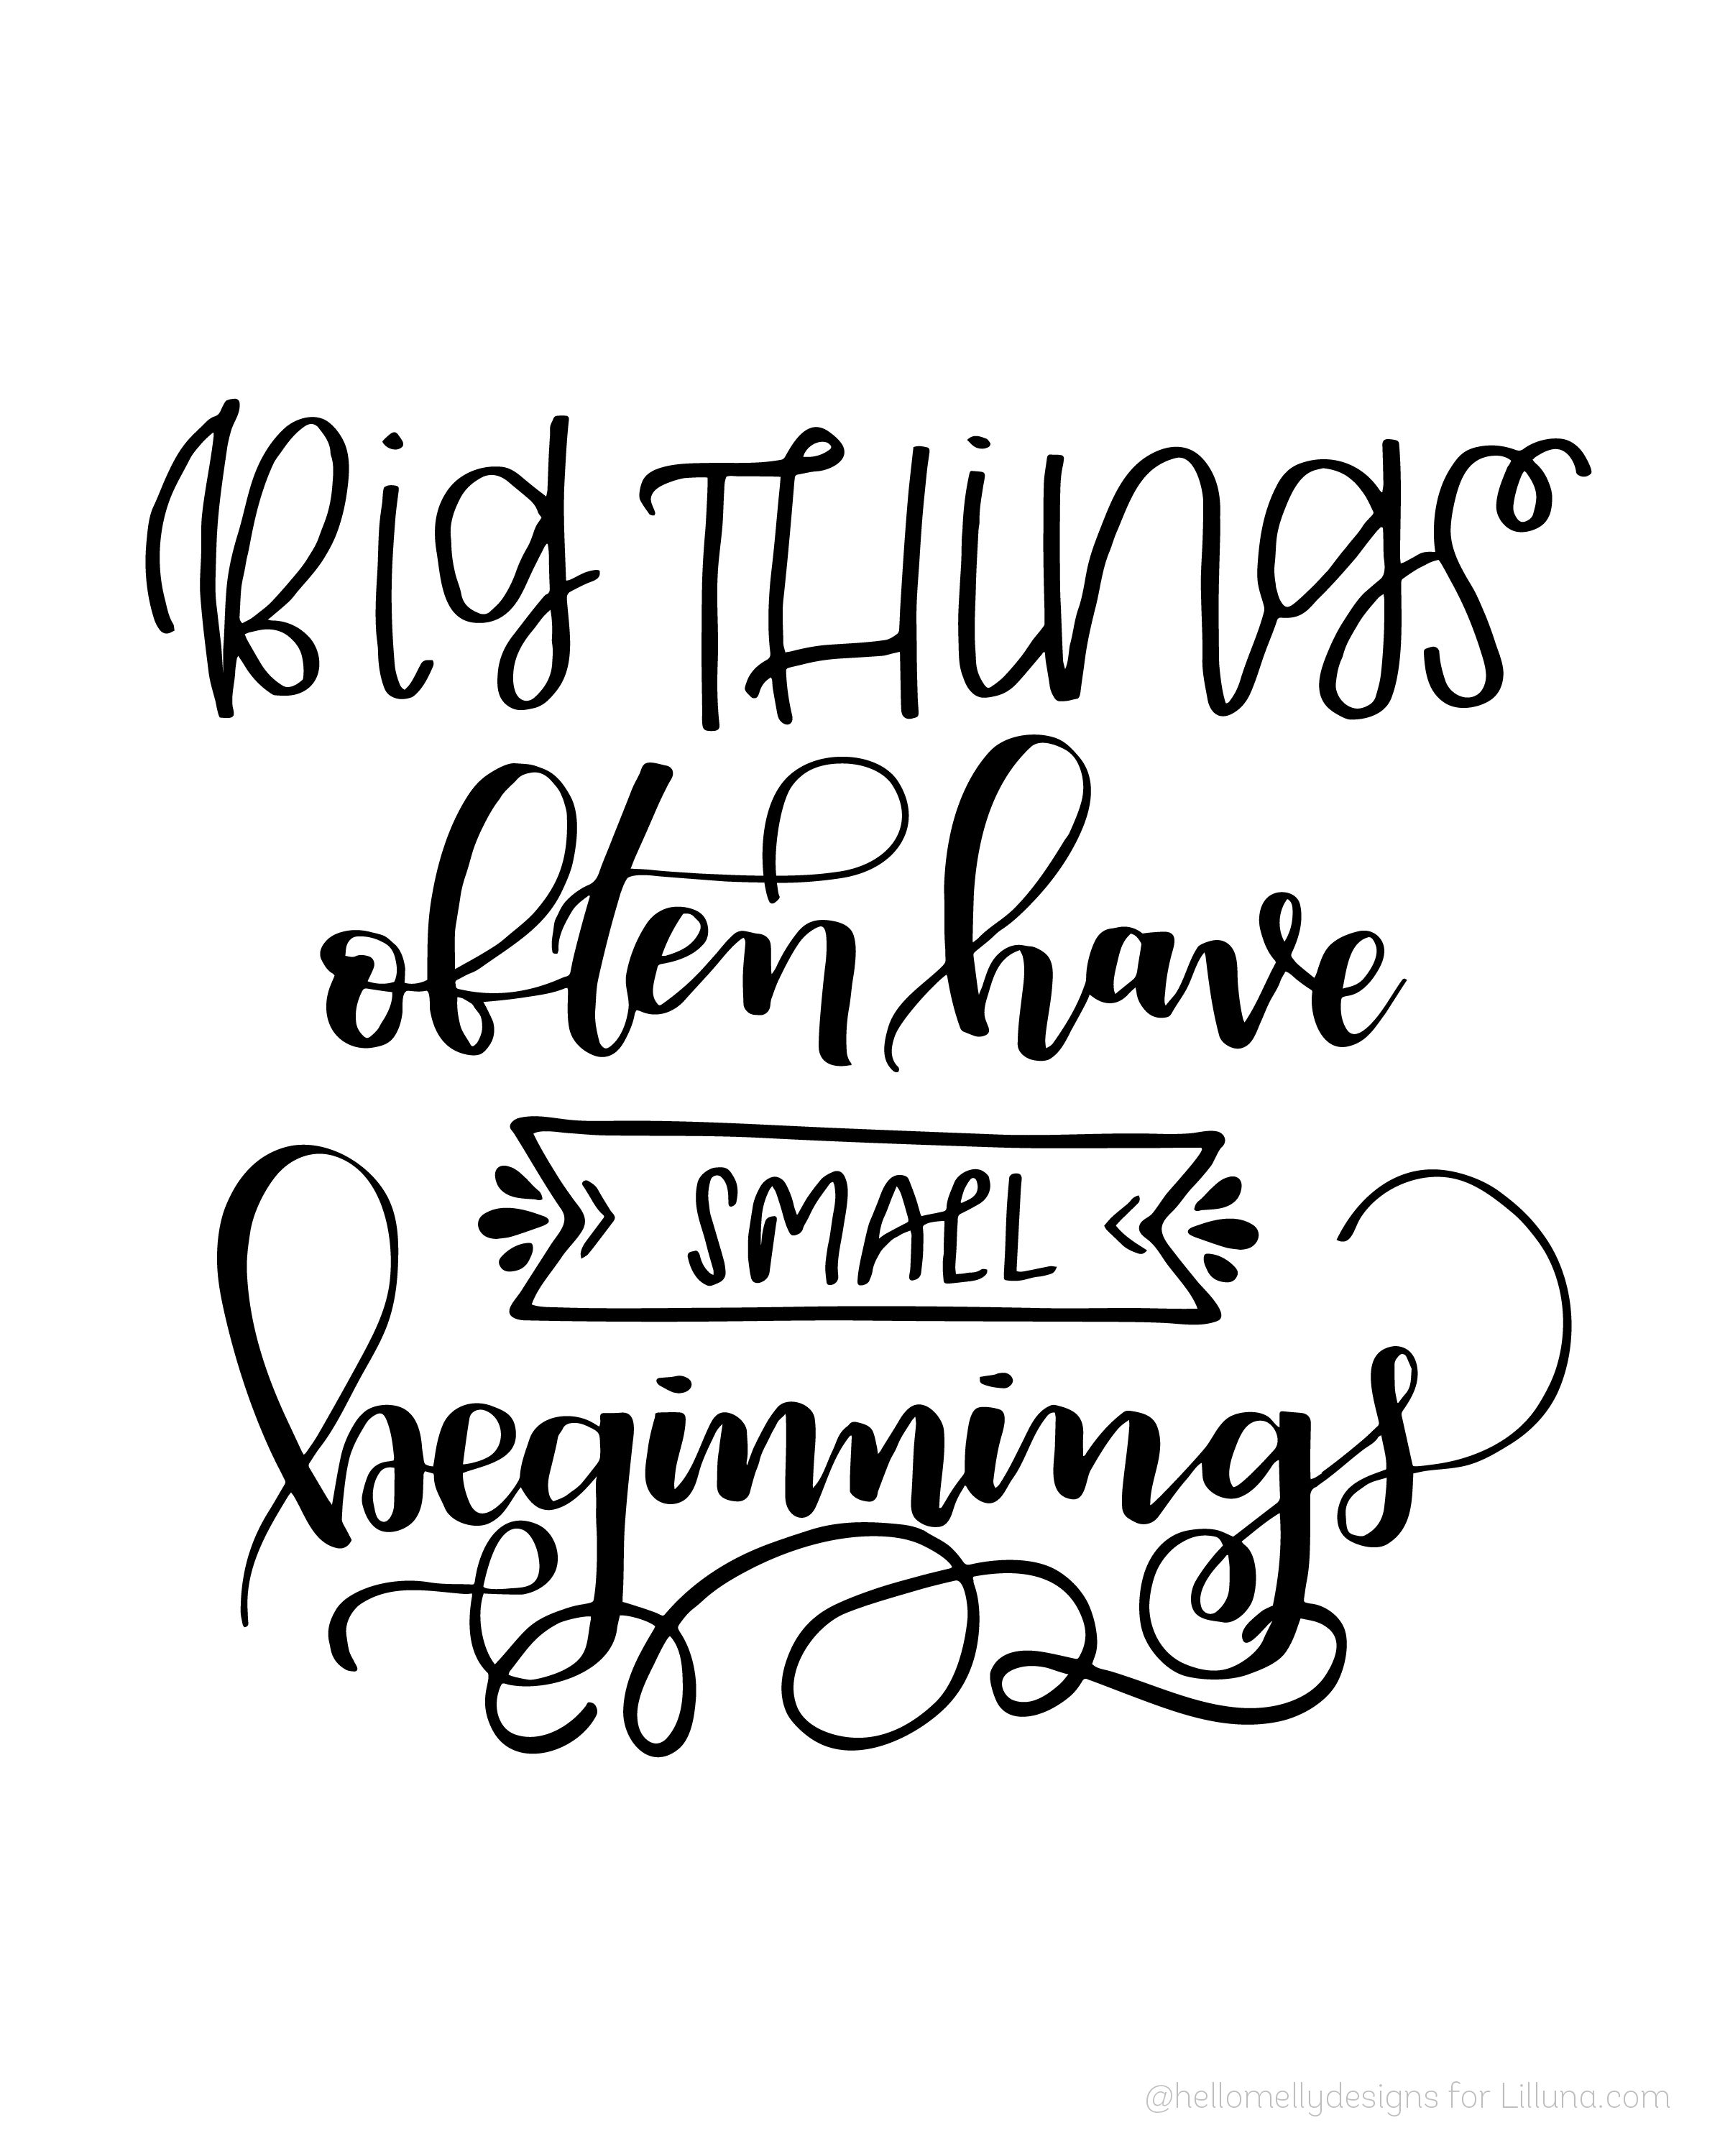 I Love You More Than Quotes: Big Things Often Have Small Beginnings